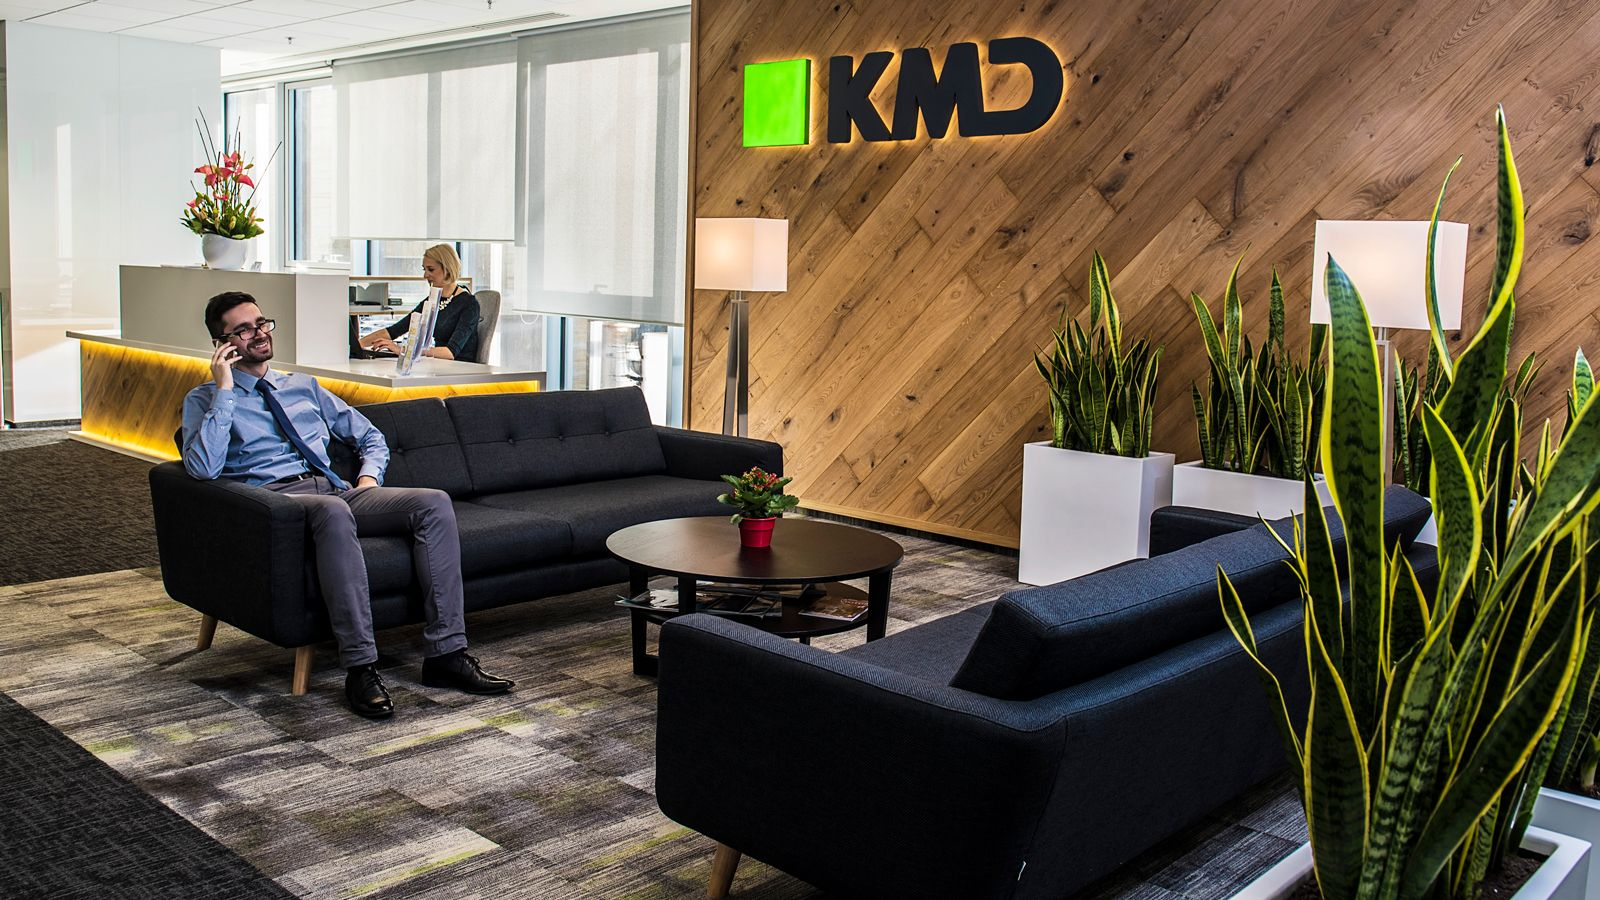 Office in KMD Poland